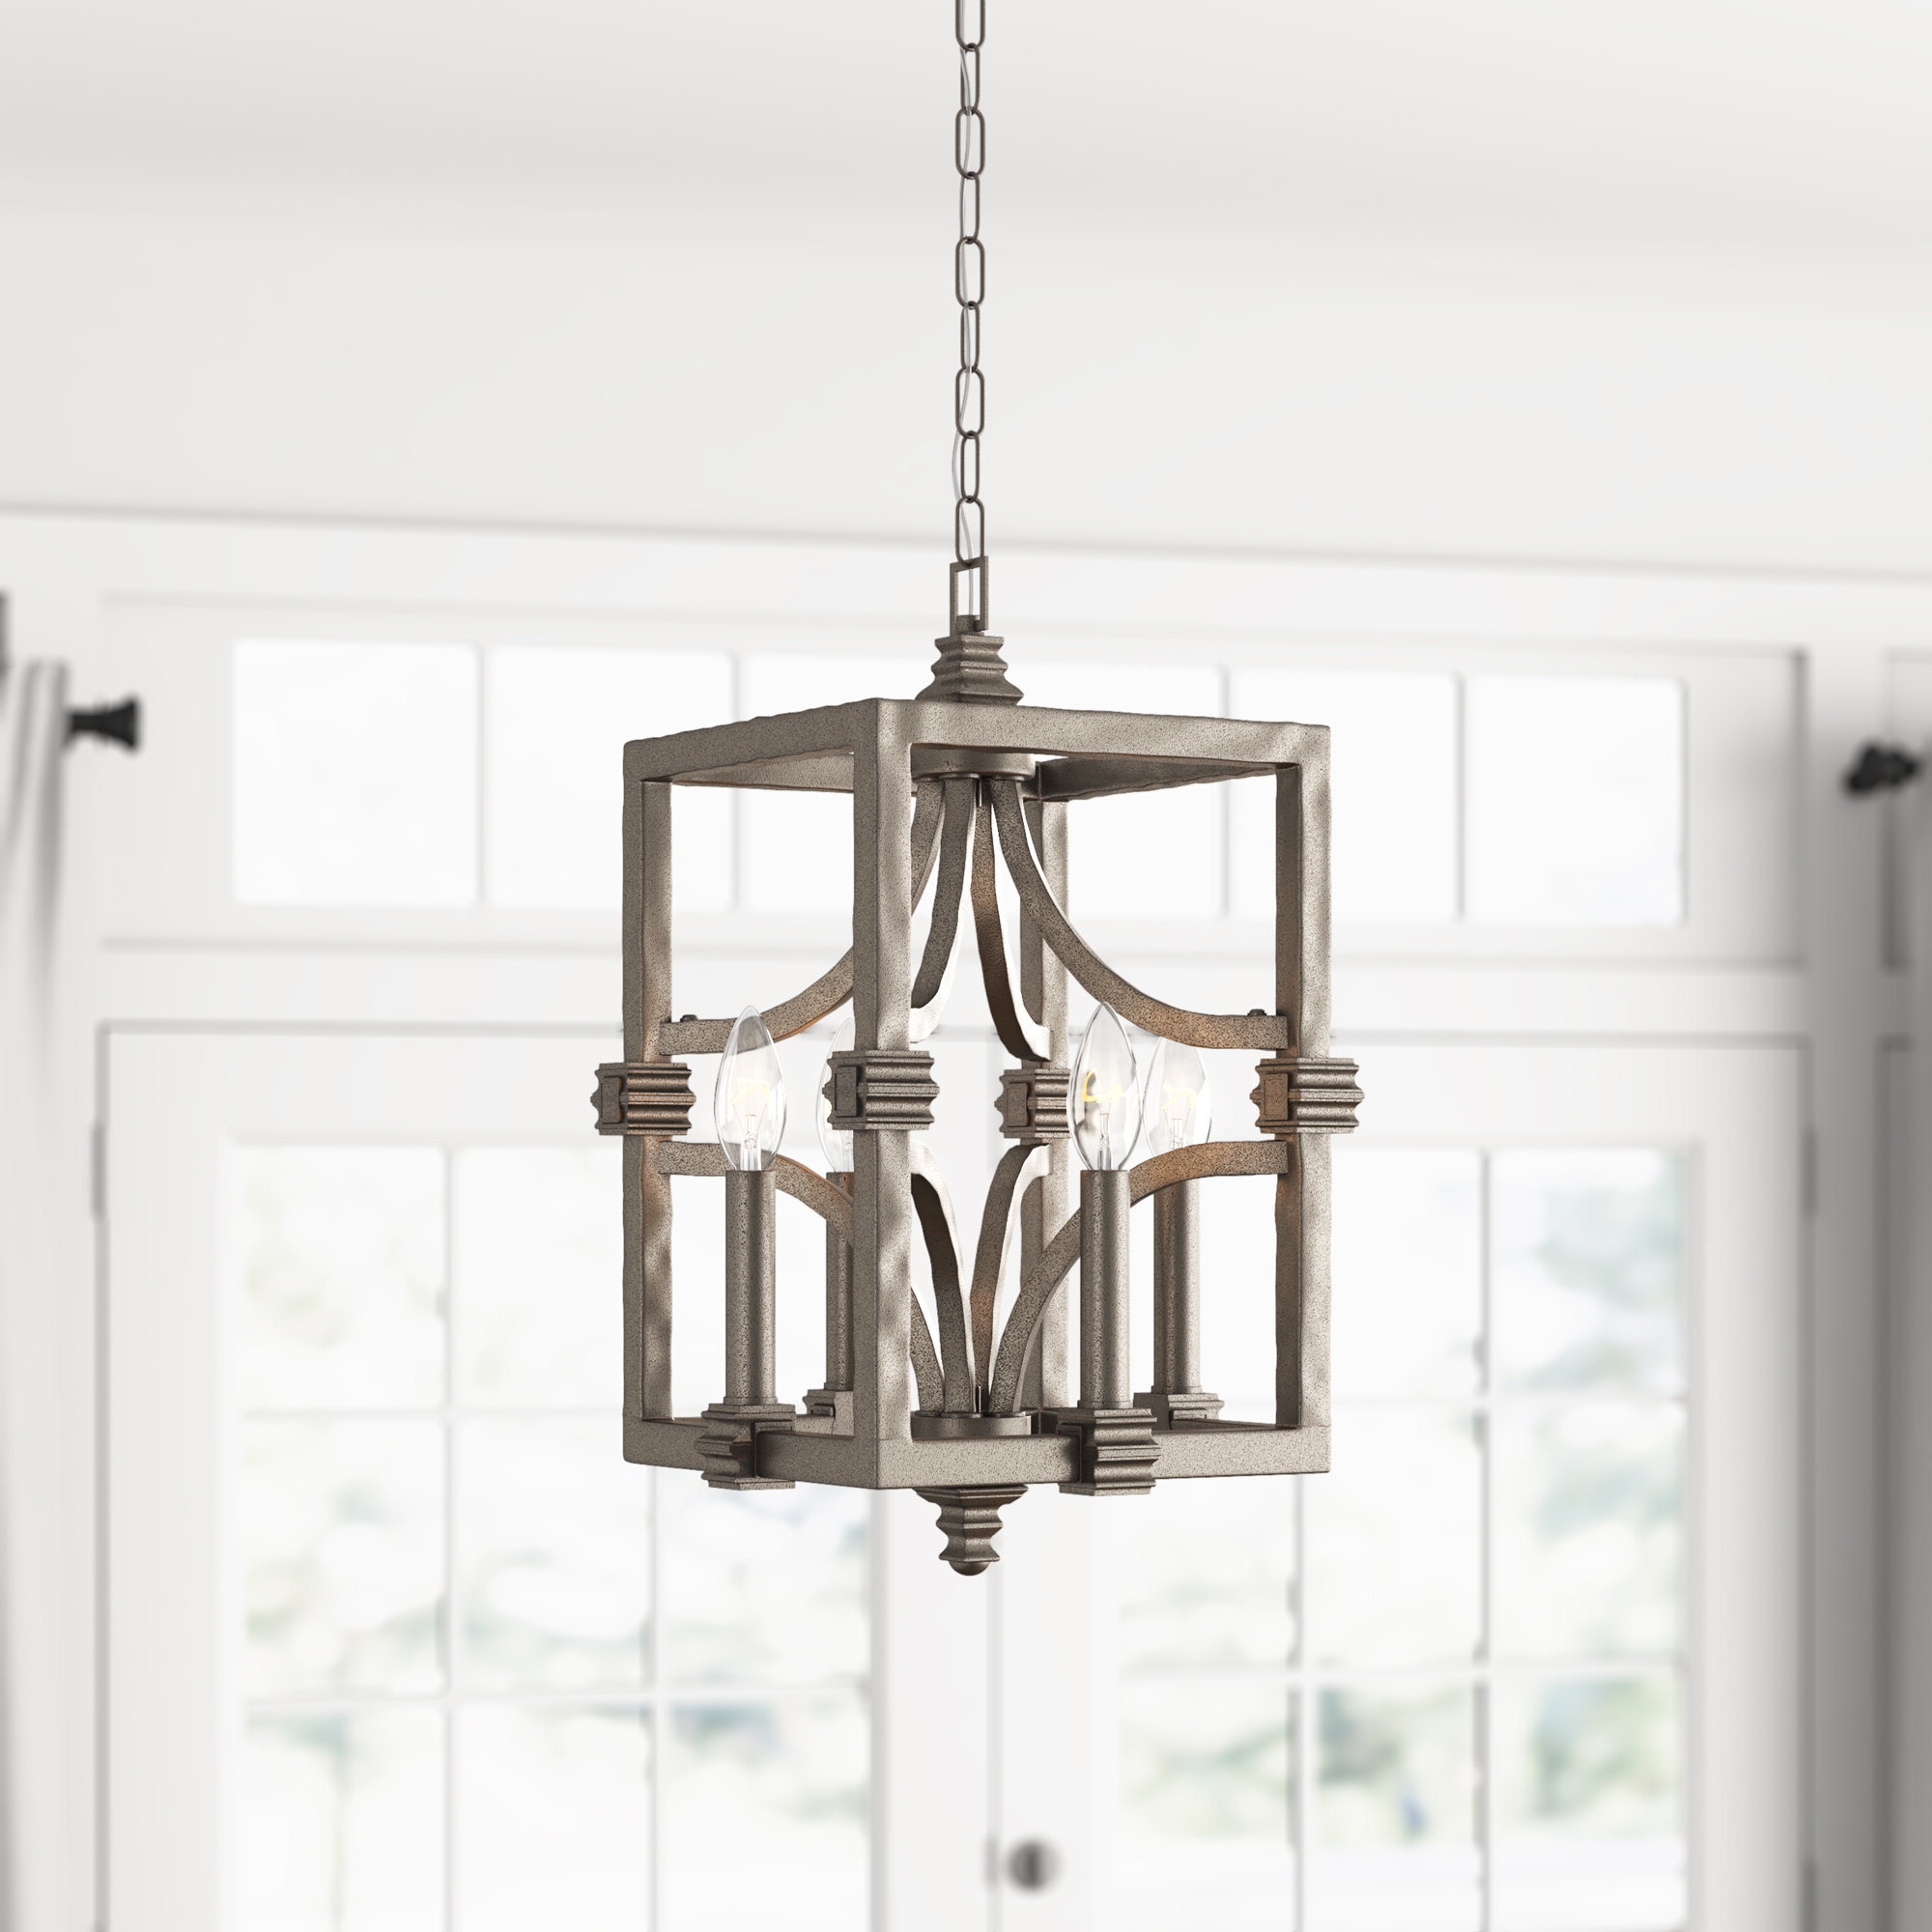 Armande 4 Light Lantern Drum Pendants Within Well Known Freeburg 4 Light Lantern Square / Rectangle Pendant (Gallery 6 of 20)